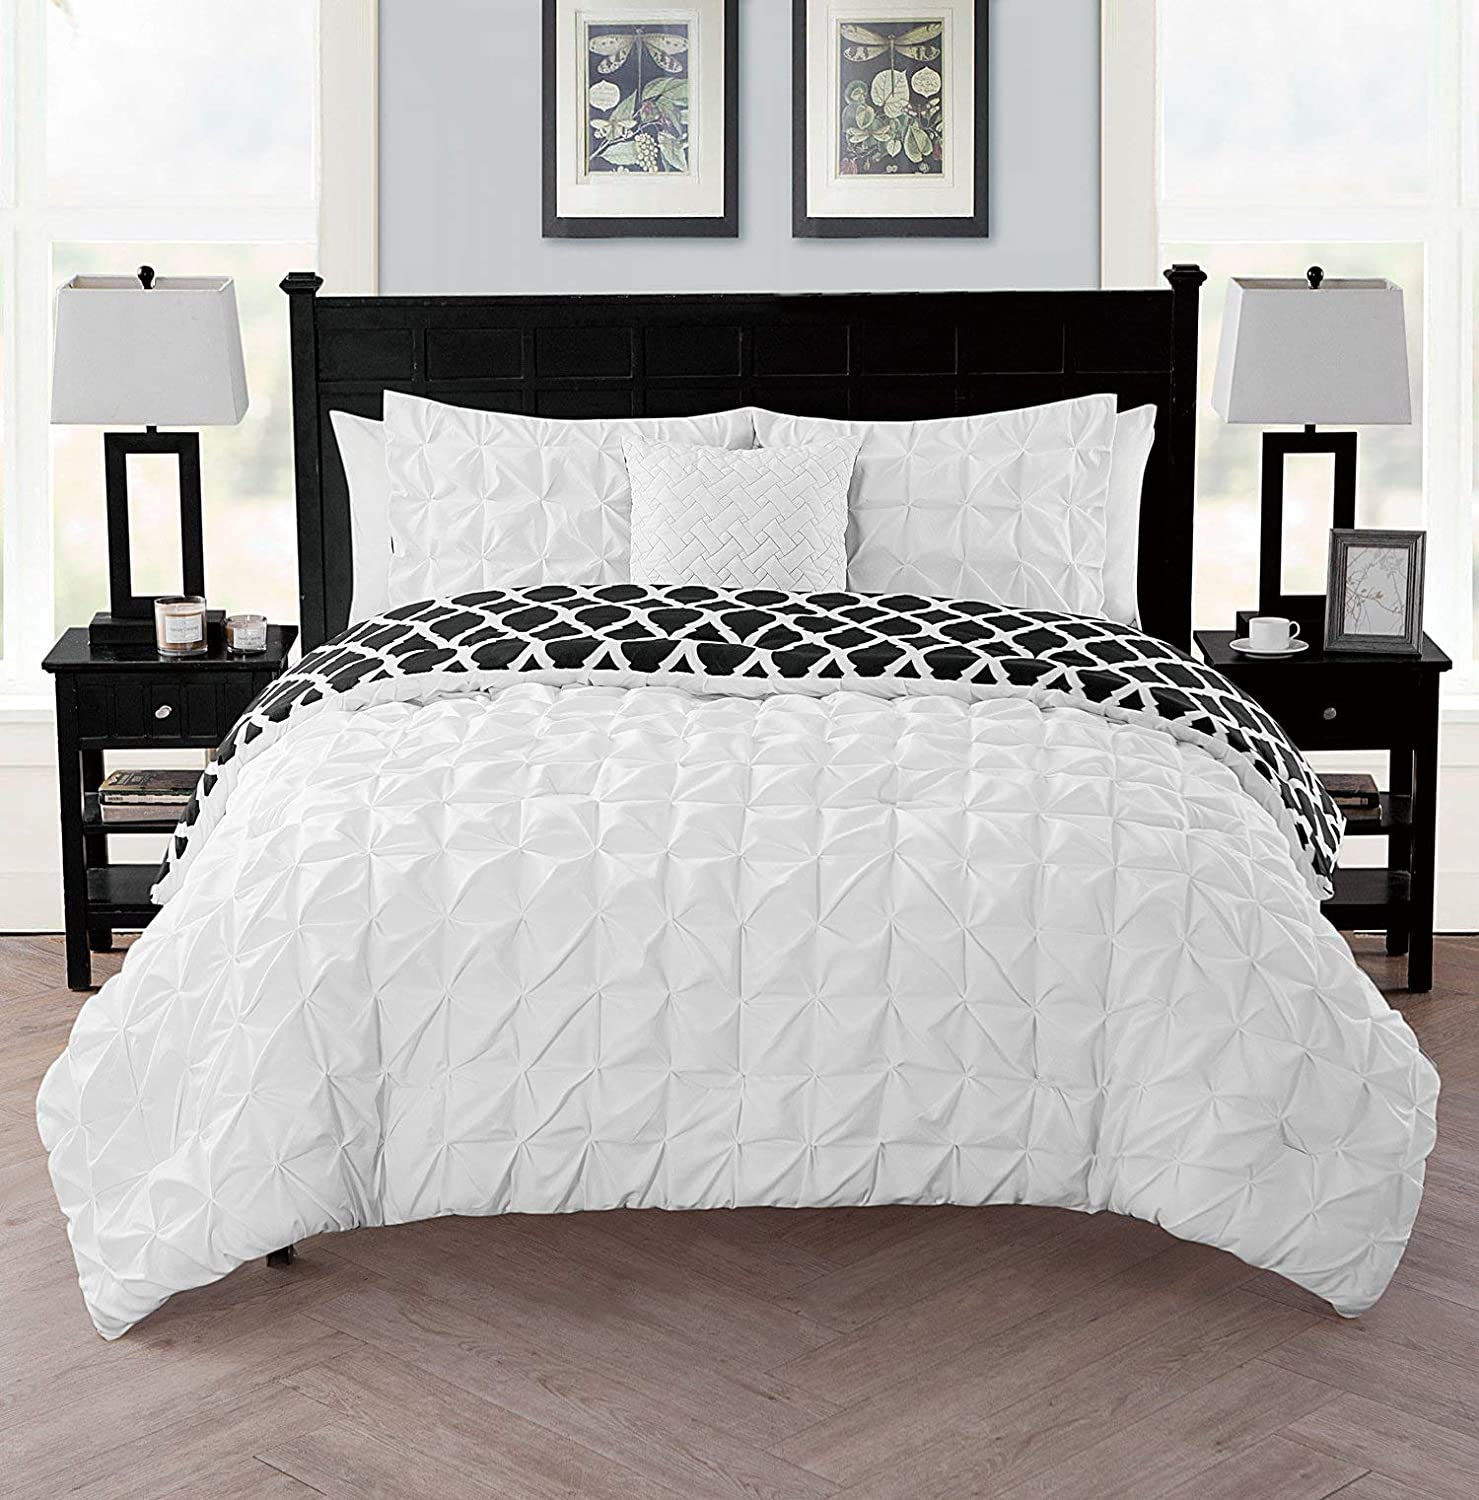 VCNY Home SCT-3DV-QUEN-IN-WH Duvet Cover Set Queen White Victoria Classics Scottsdale